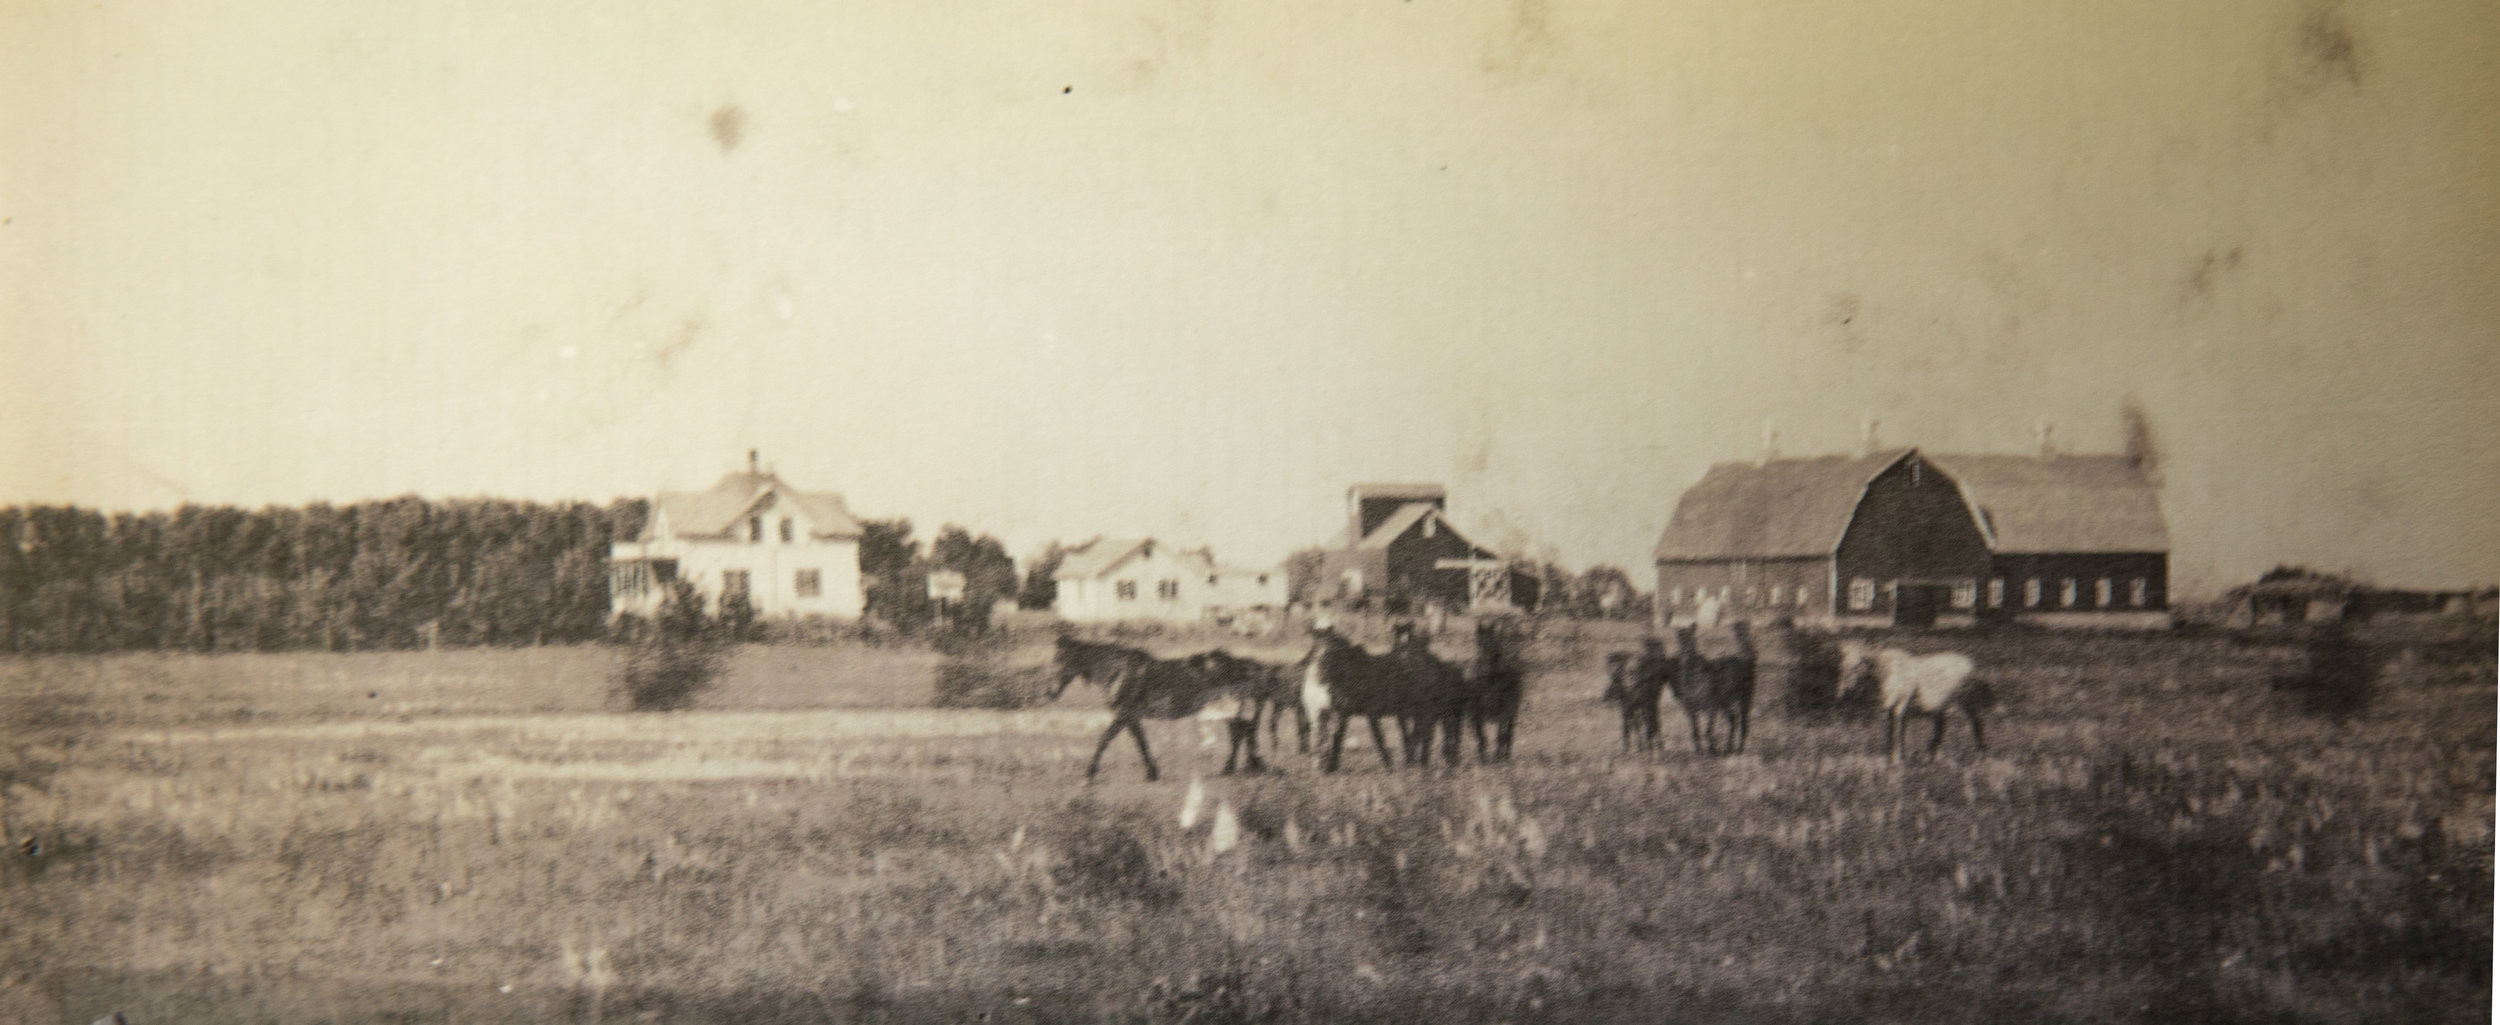 Minnie's childhood farm was known as the Leland farm. It was one of the largest farmsteads in the area.